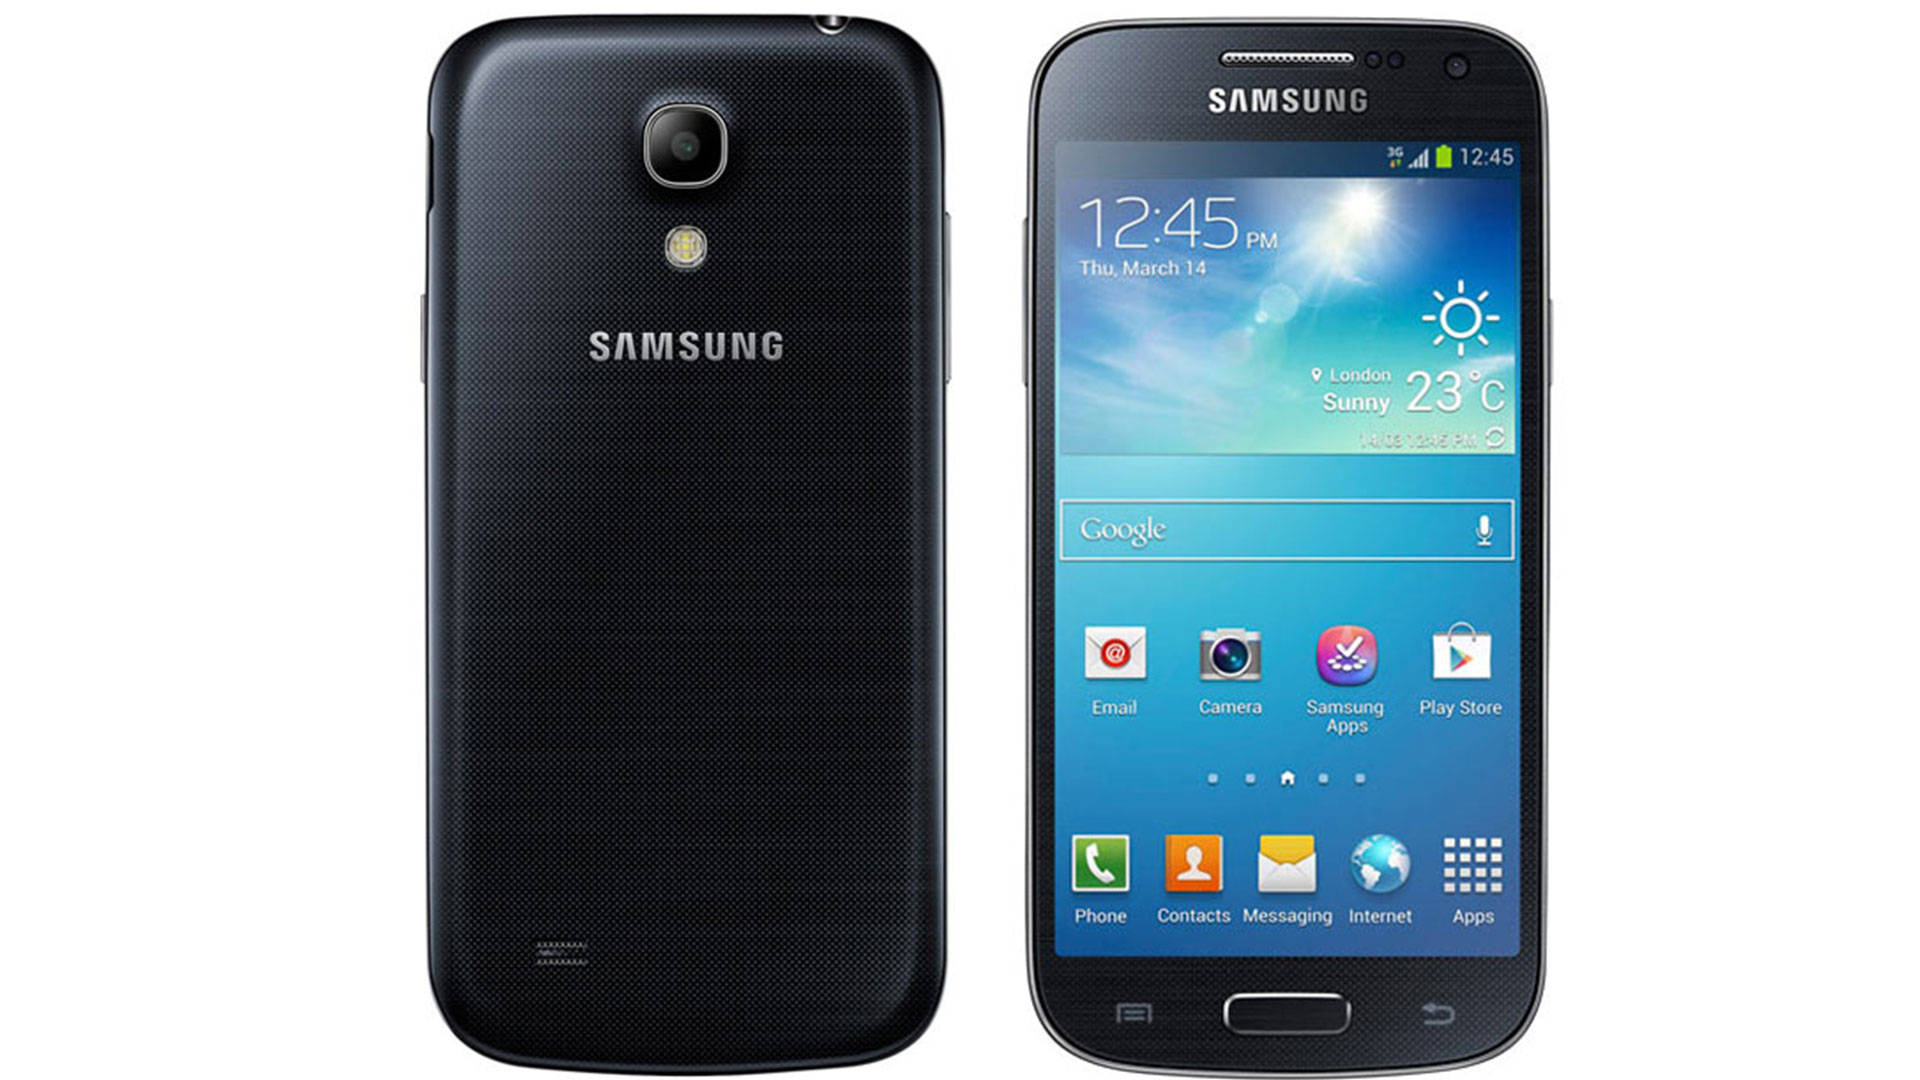 Samsung-Galaxy-S4-Mini-Price-In-Russia